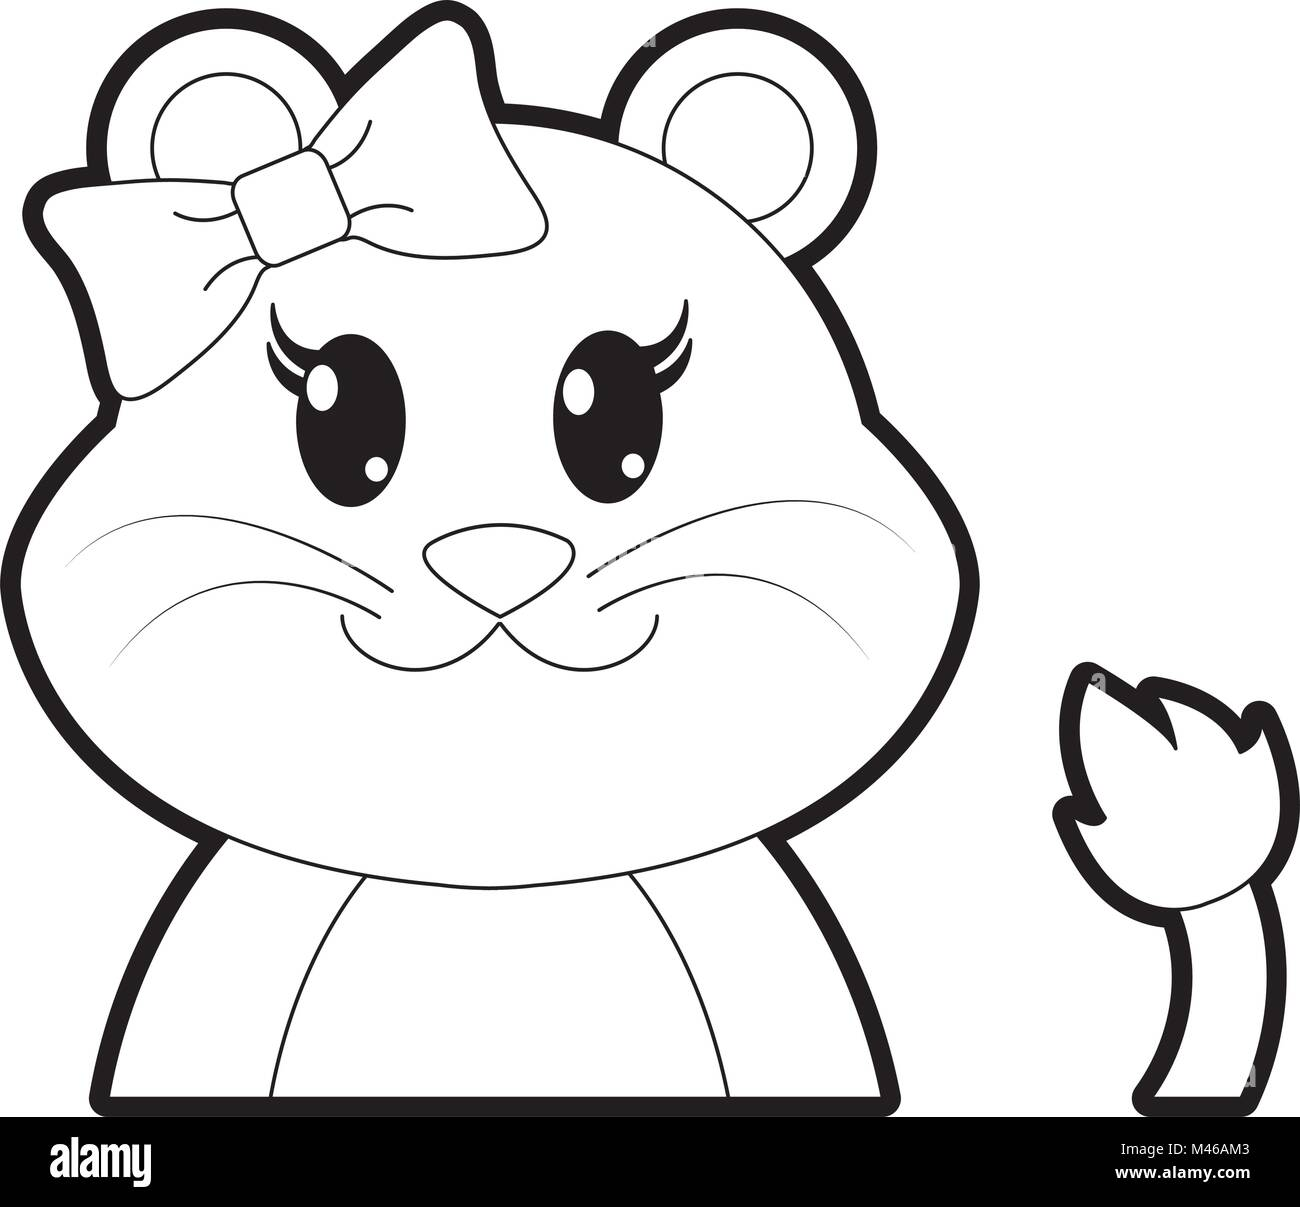 Cartoon Lion Animal Outline High Resolution Stock Photography And Images Alamy 849x941 eric's lion outline by richardmeeker. https www alamy com stock photo outline adorable female lion cute animal 174702419 html